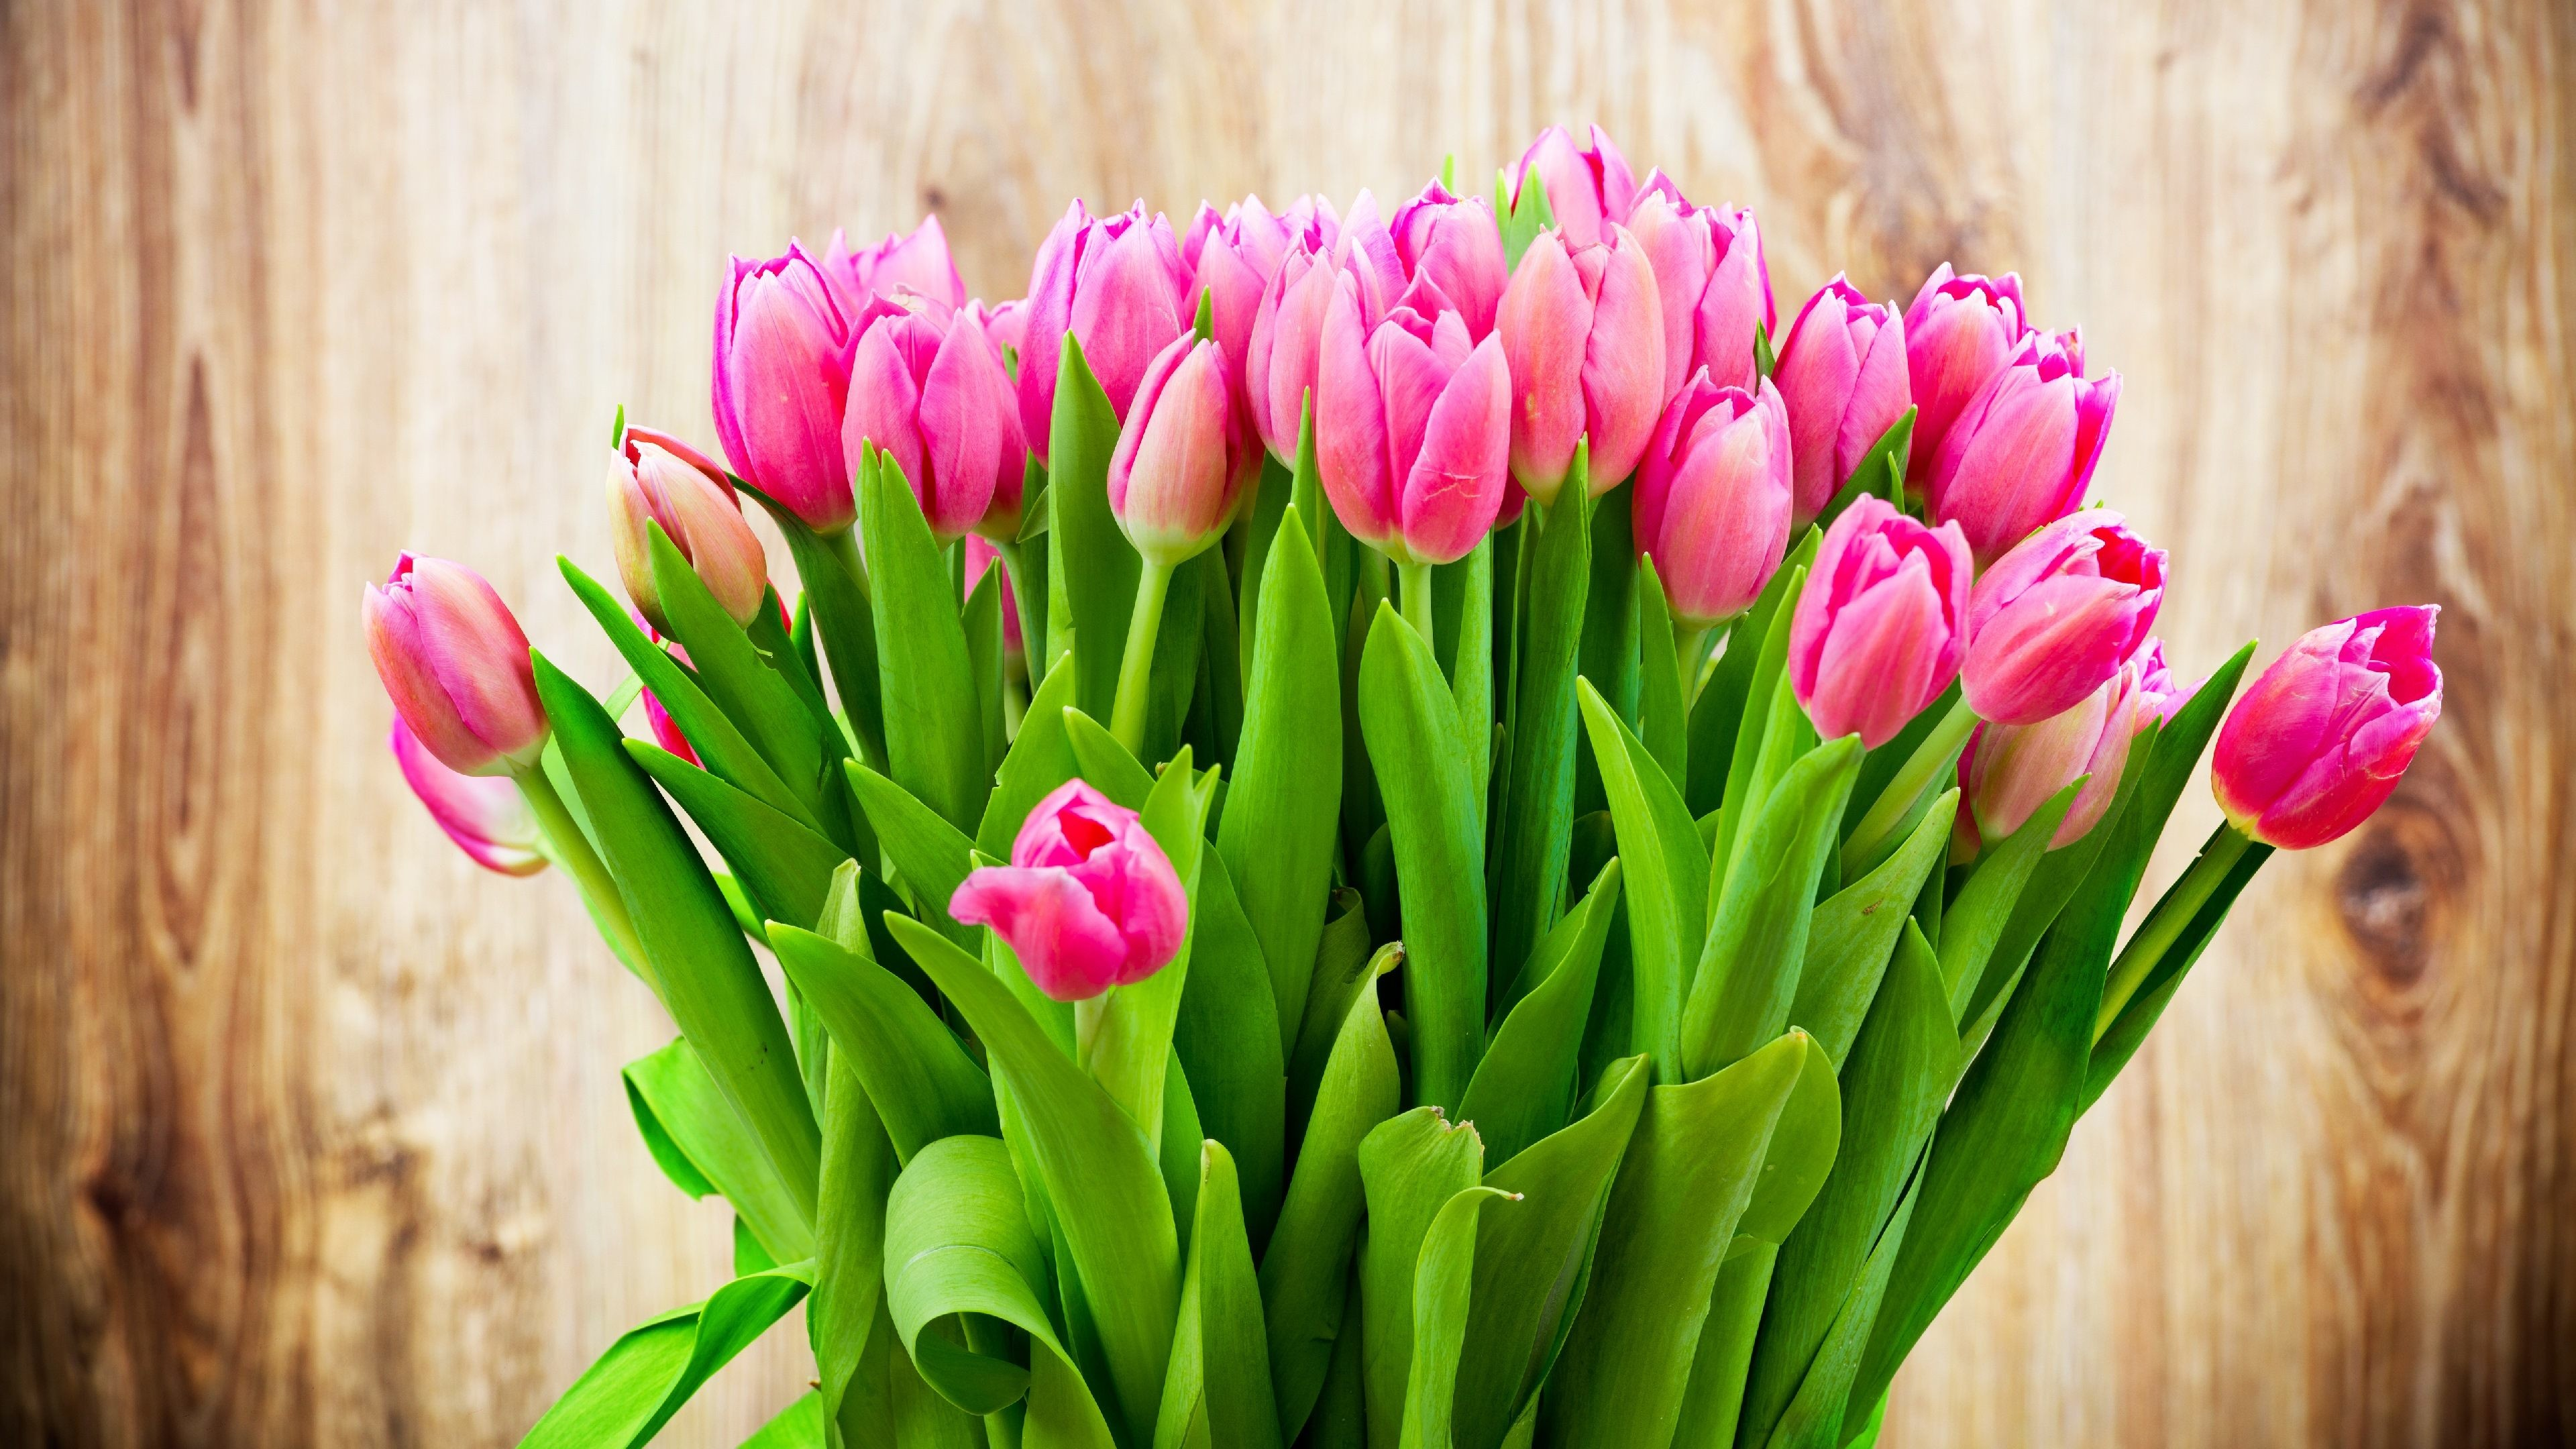 3840x2160 Tulips HD Backgrounds for PC